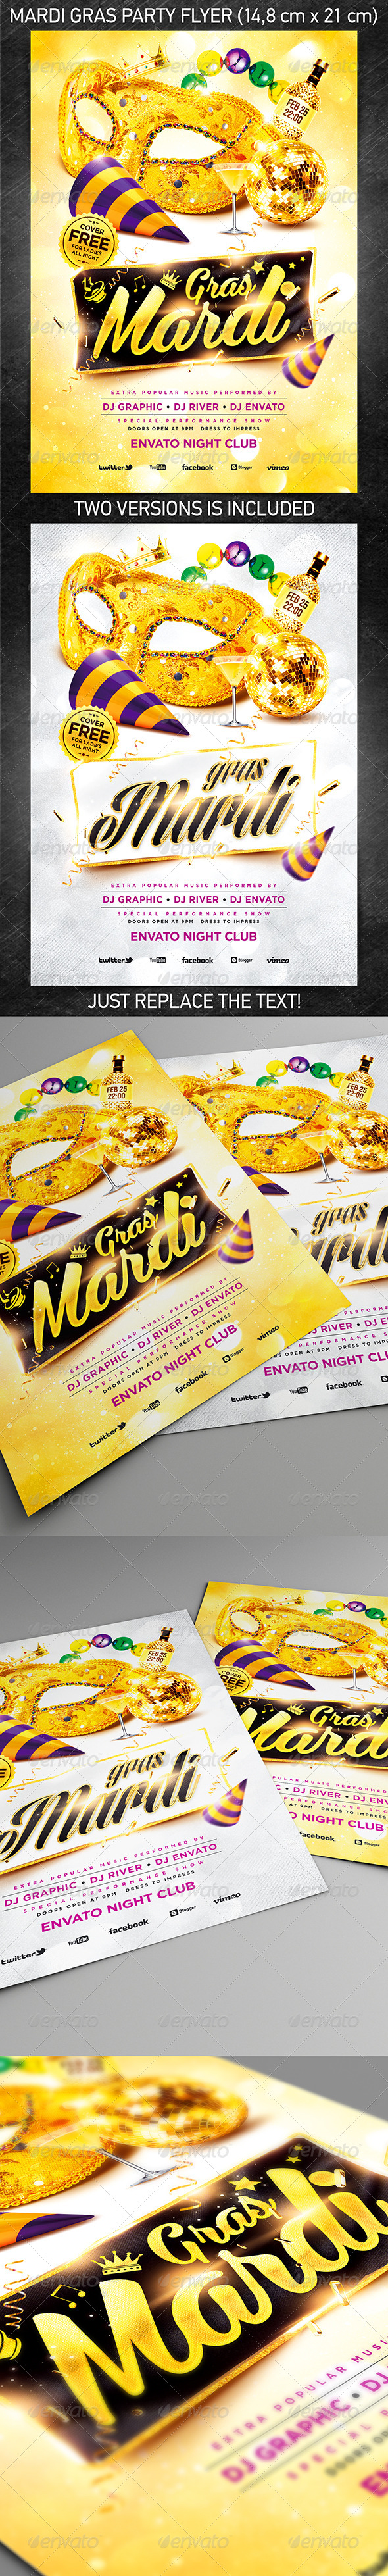 GraphicRiver Mardi Gras Party Flyer Vol.3 6562012